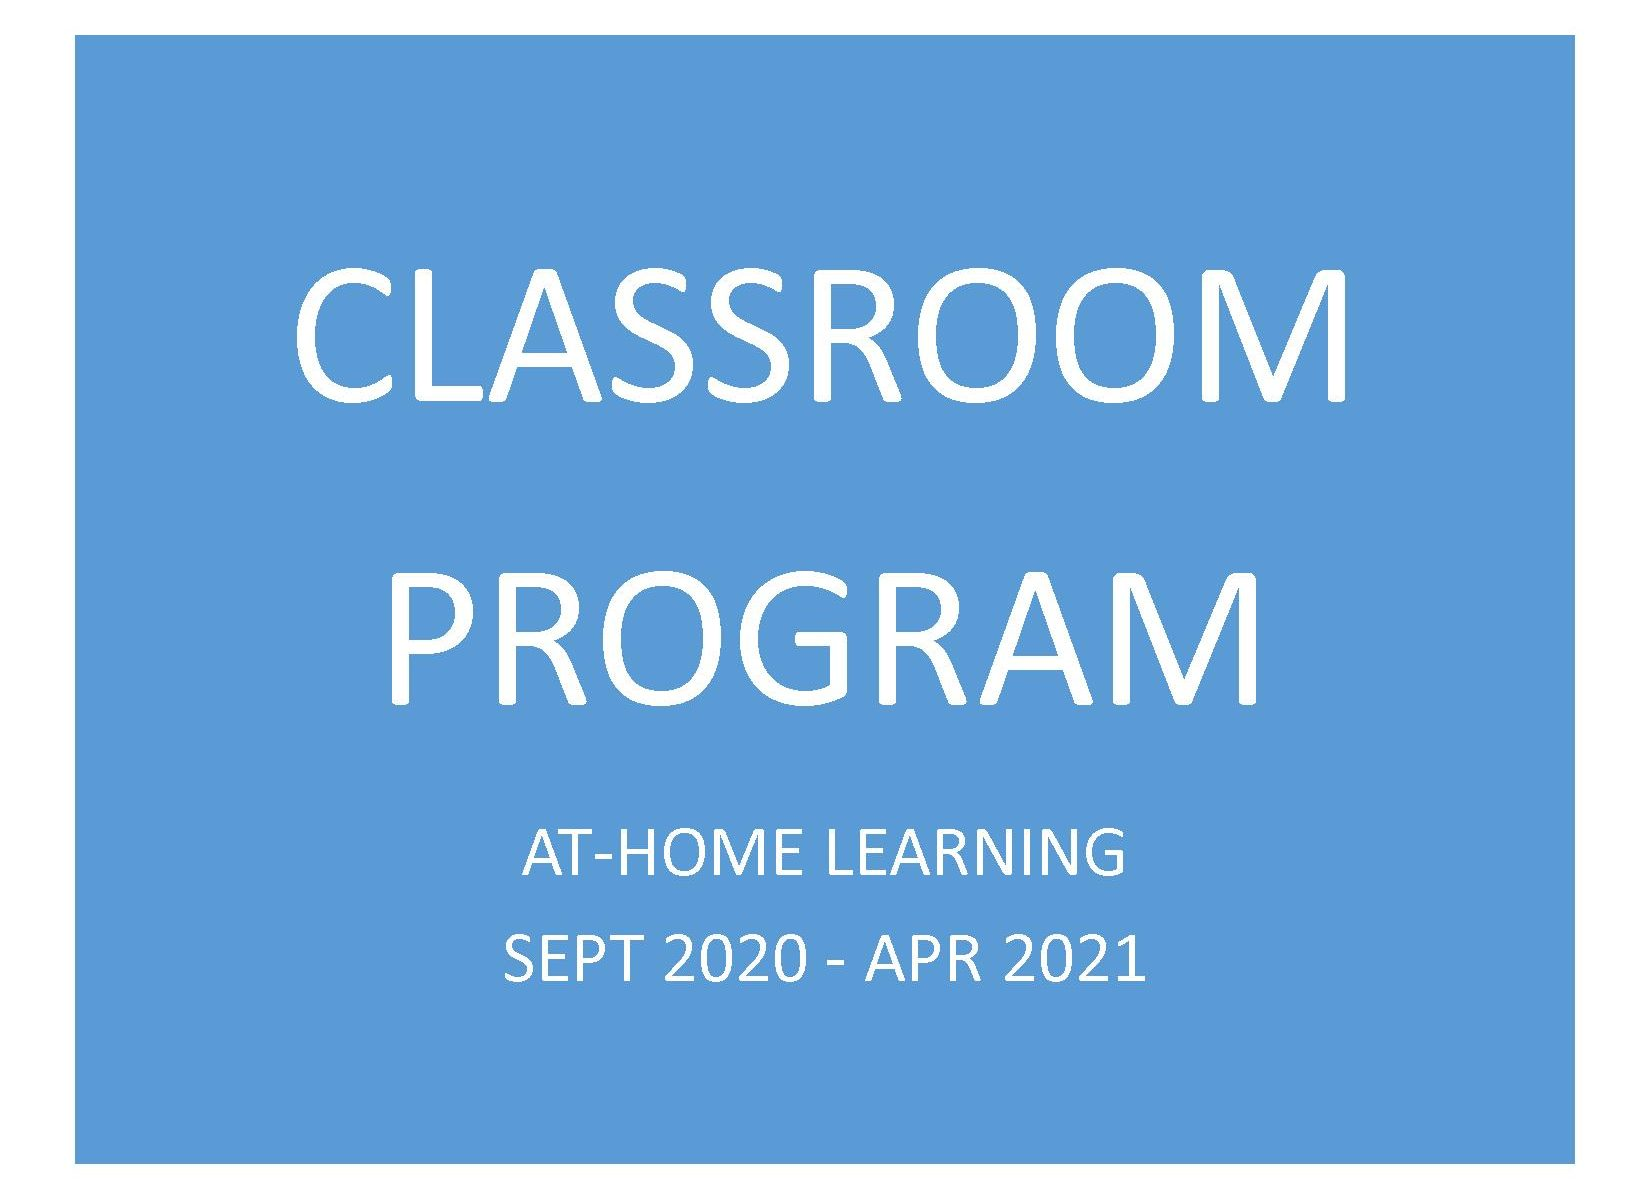 Classroom Program 2020 is At-Home Learning